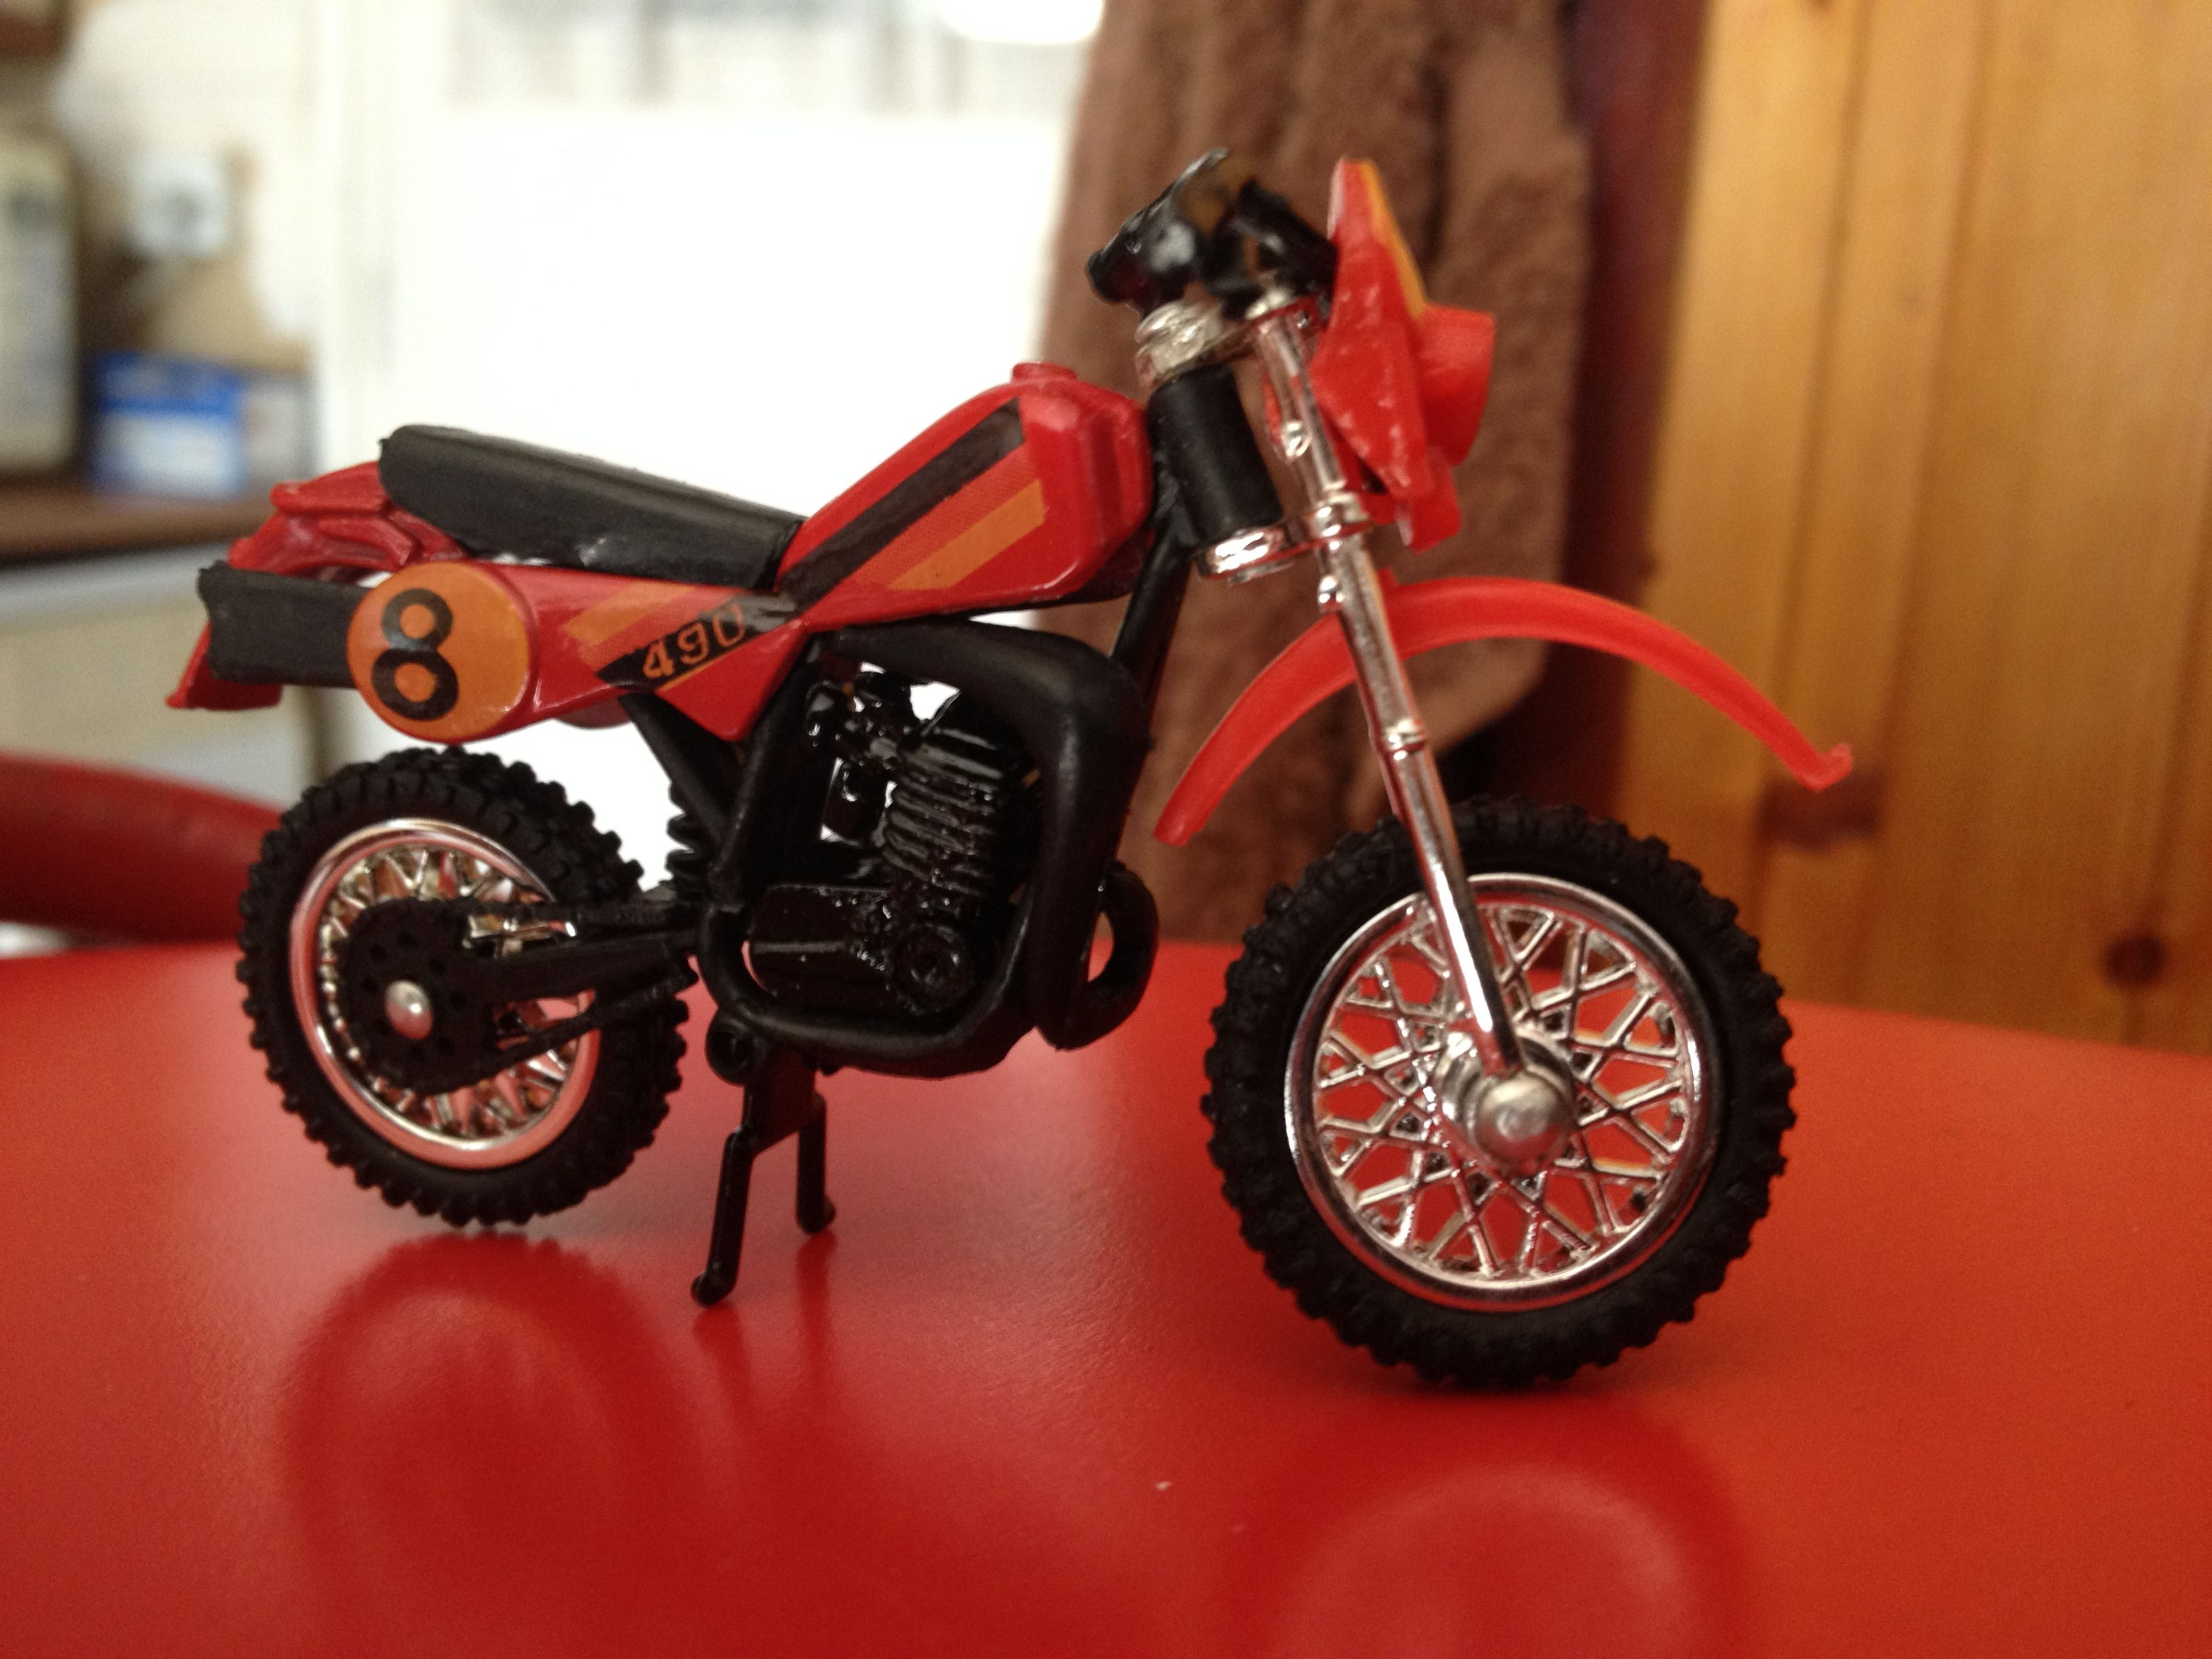 Maico Enduro82 With 79 Plasticsunless Anybody Can Tell Me Different